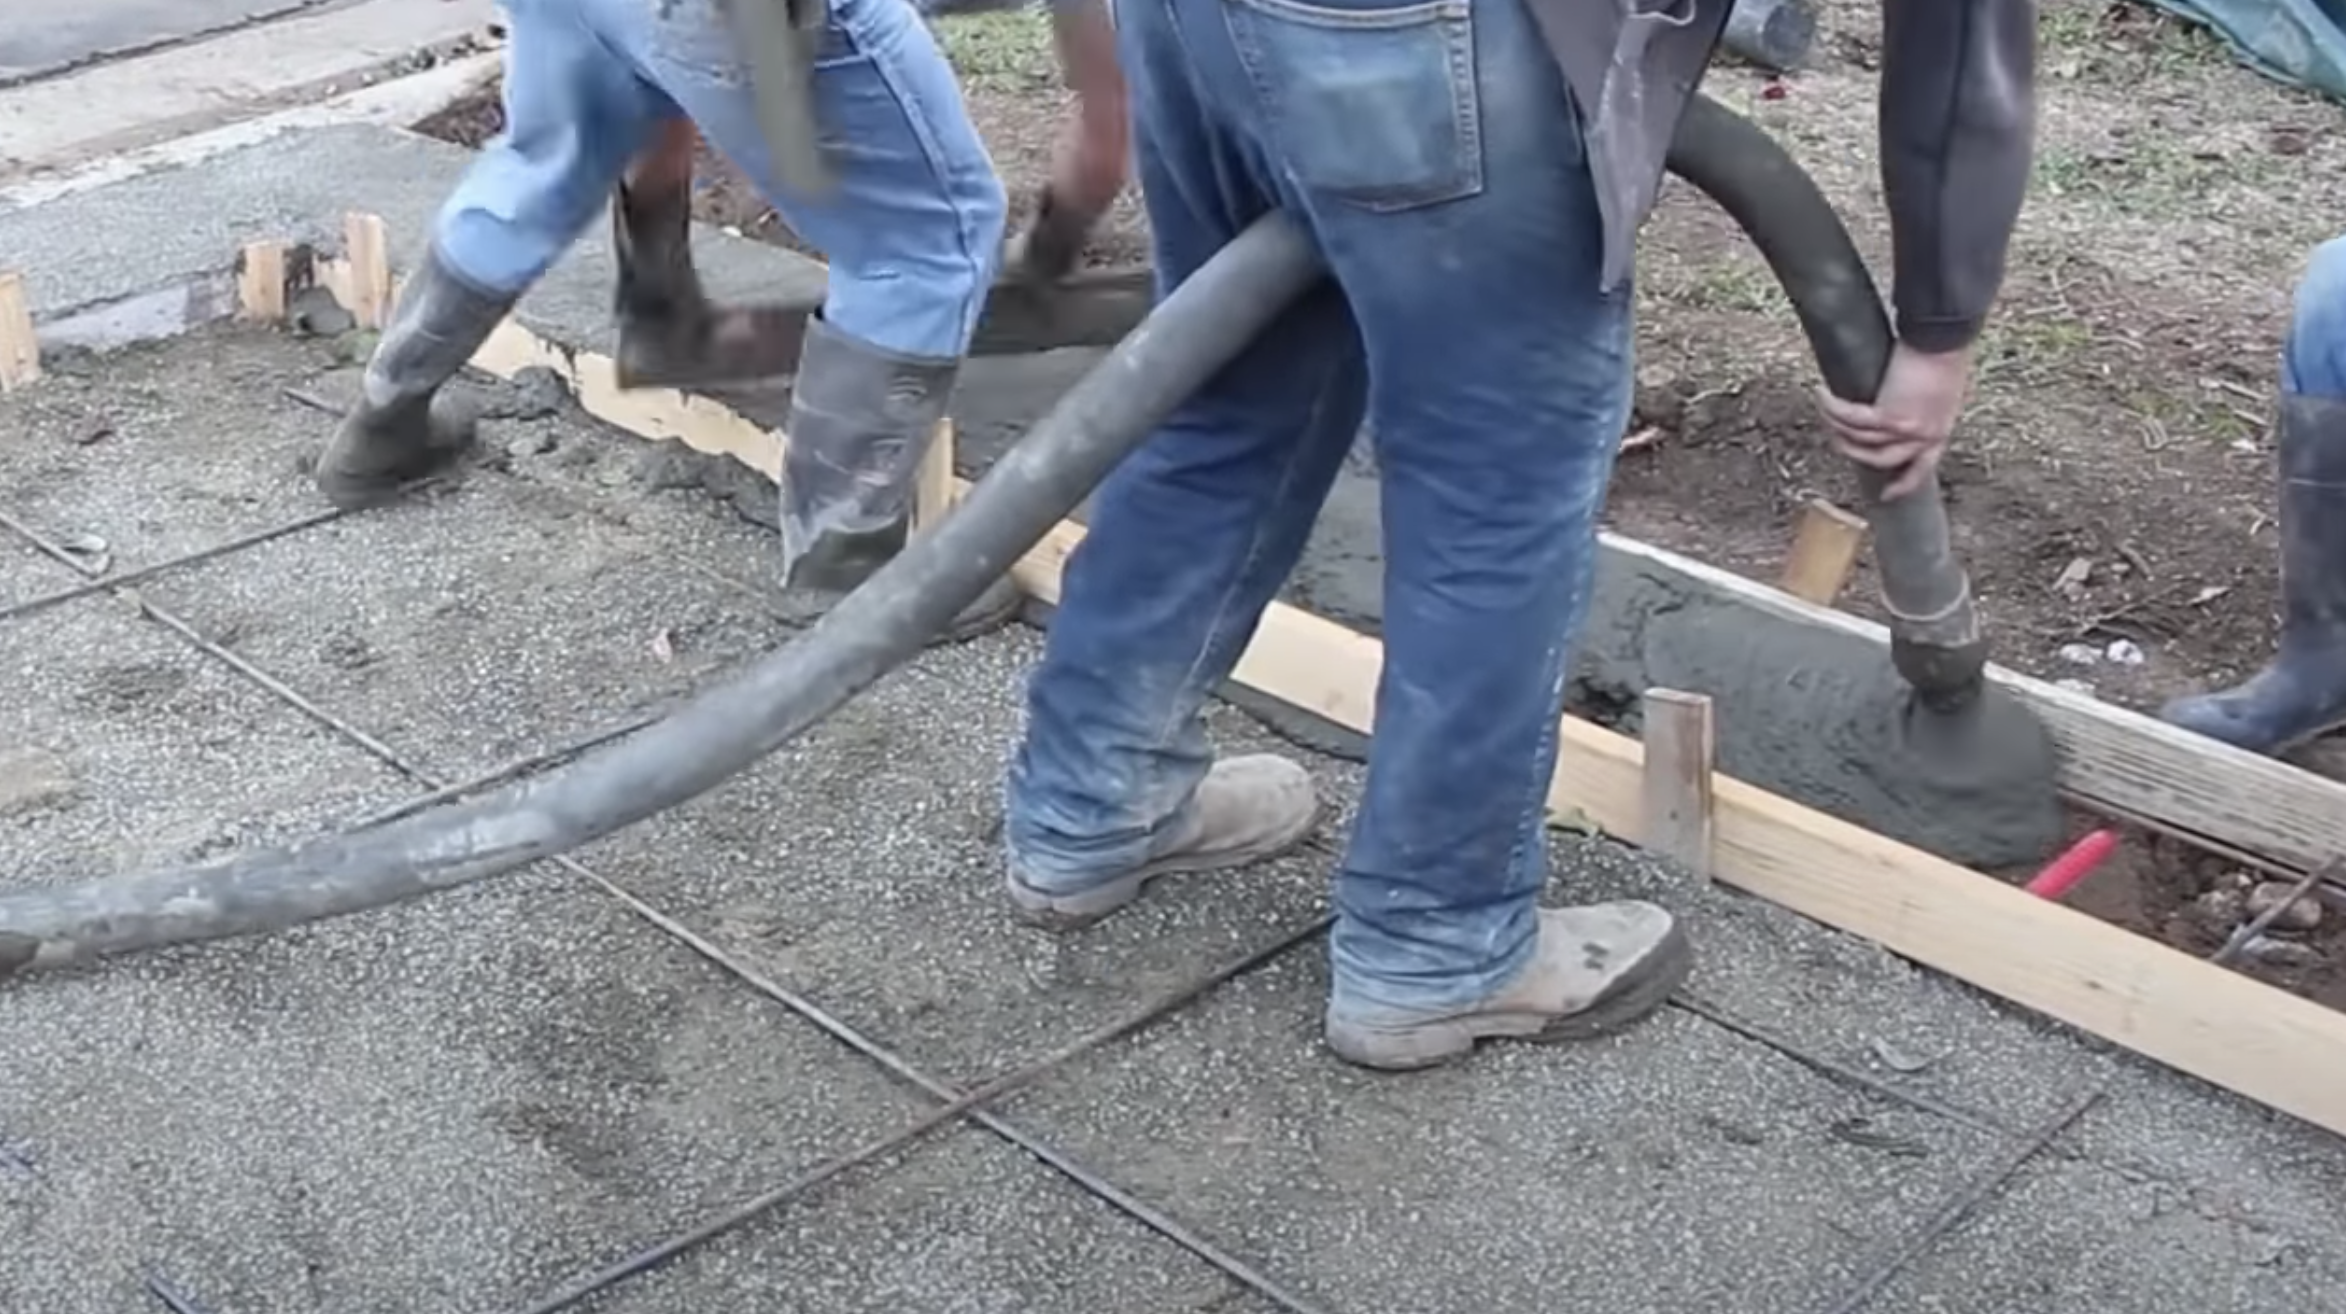 this image shows concrete pumping at work in fremont, california